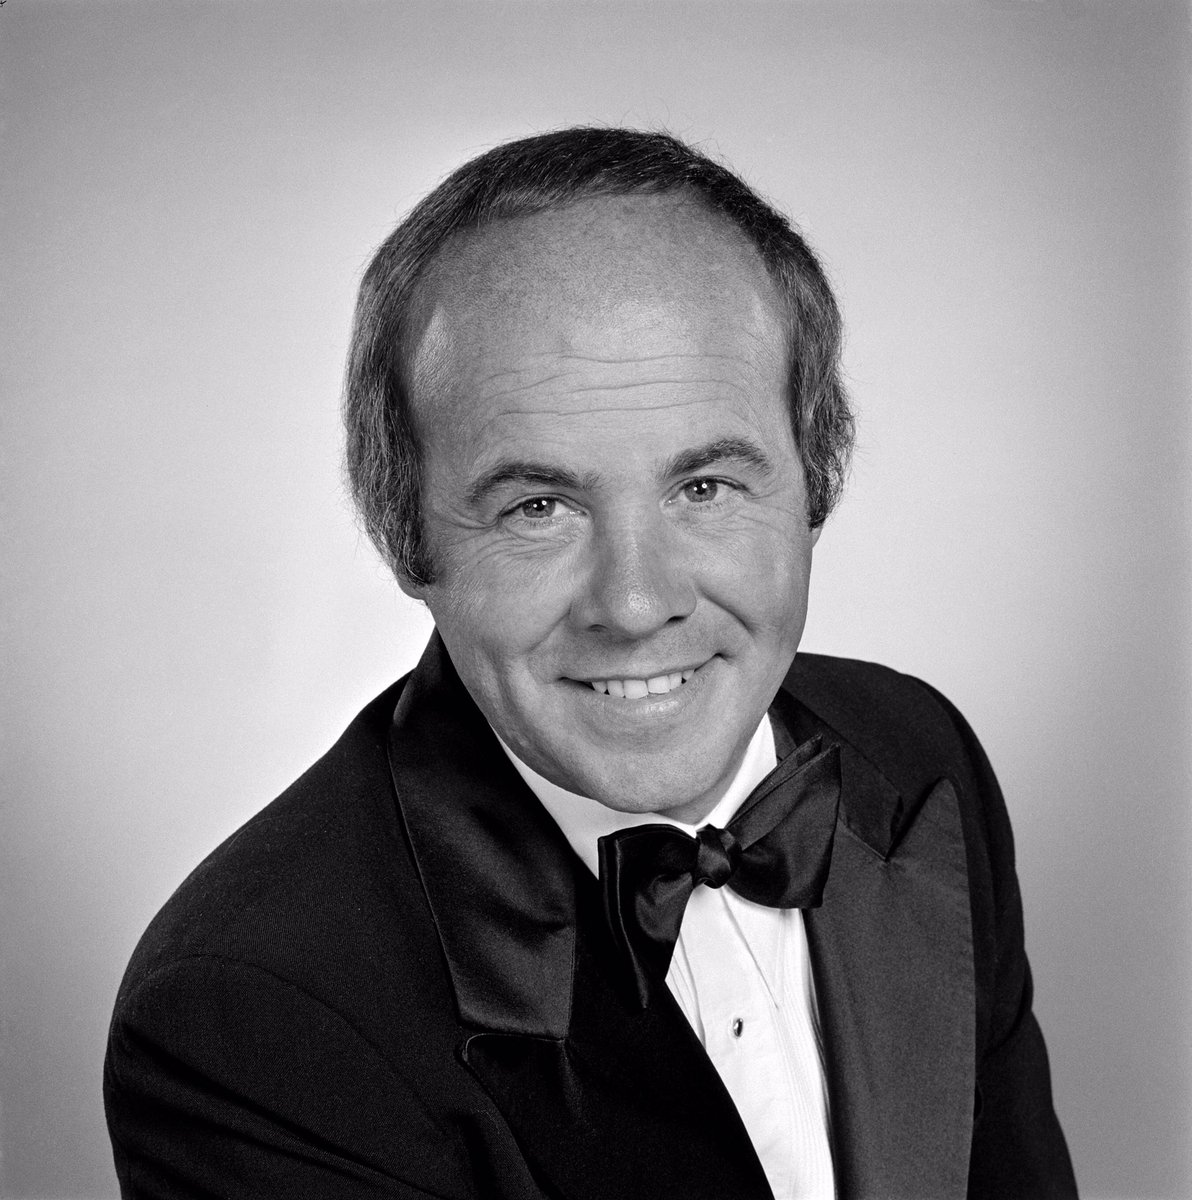 RT @goldenglobes: In Memoriam: Tim Conway, Golden Globe Winner, 1933-2019. https://t.co/oAL4CXxg17 #actors https://t.co/5pf1npMbor